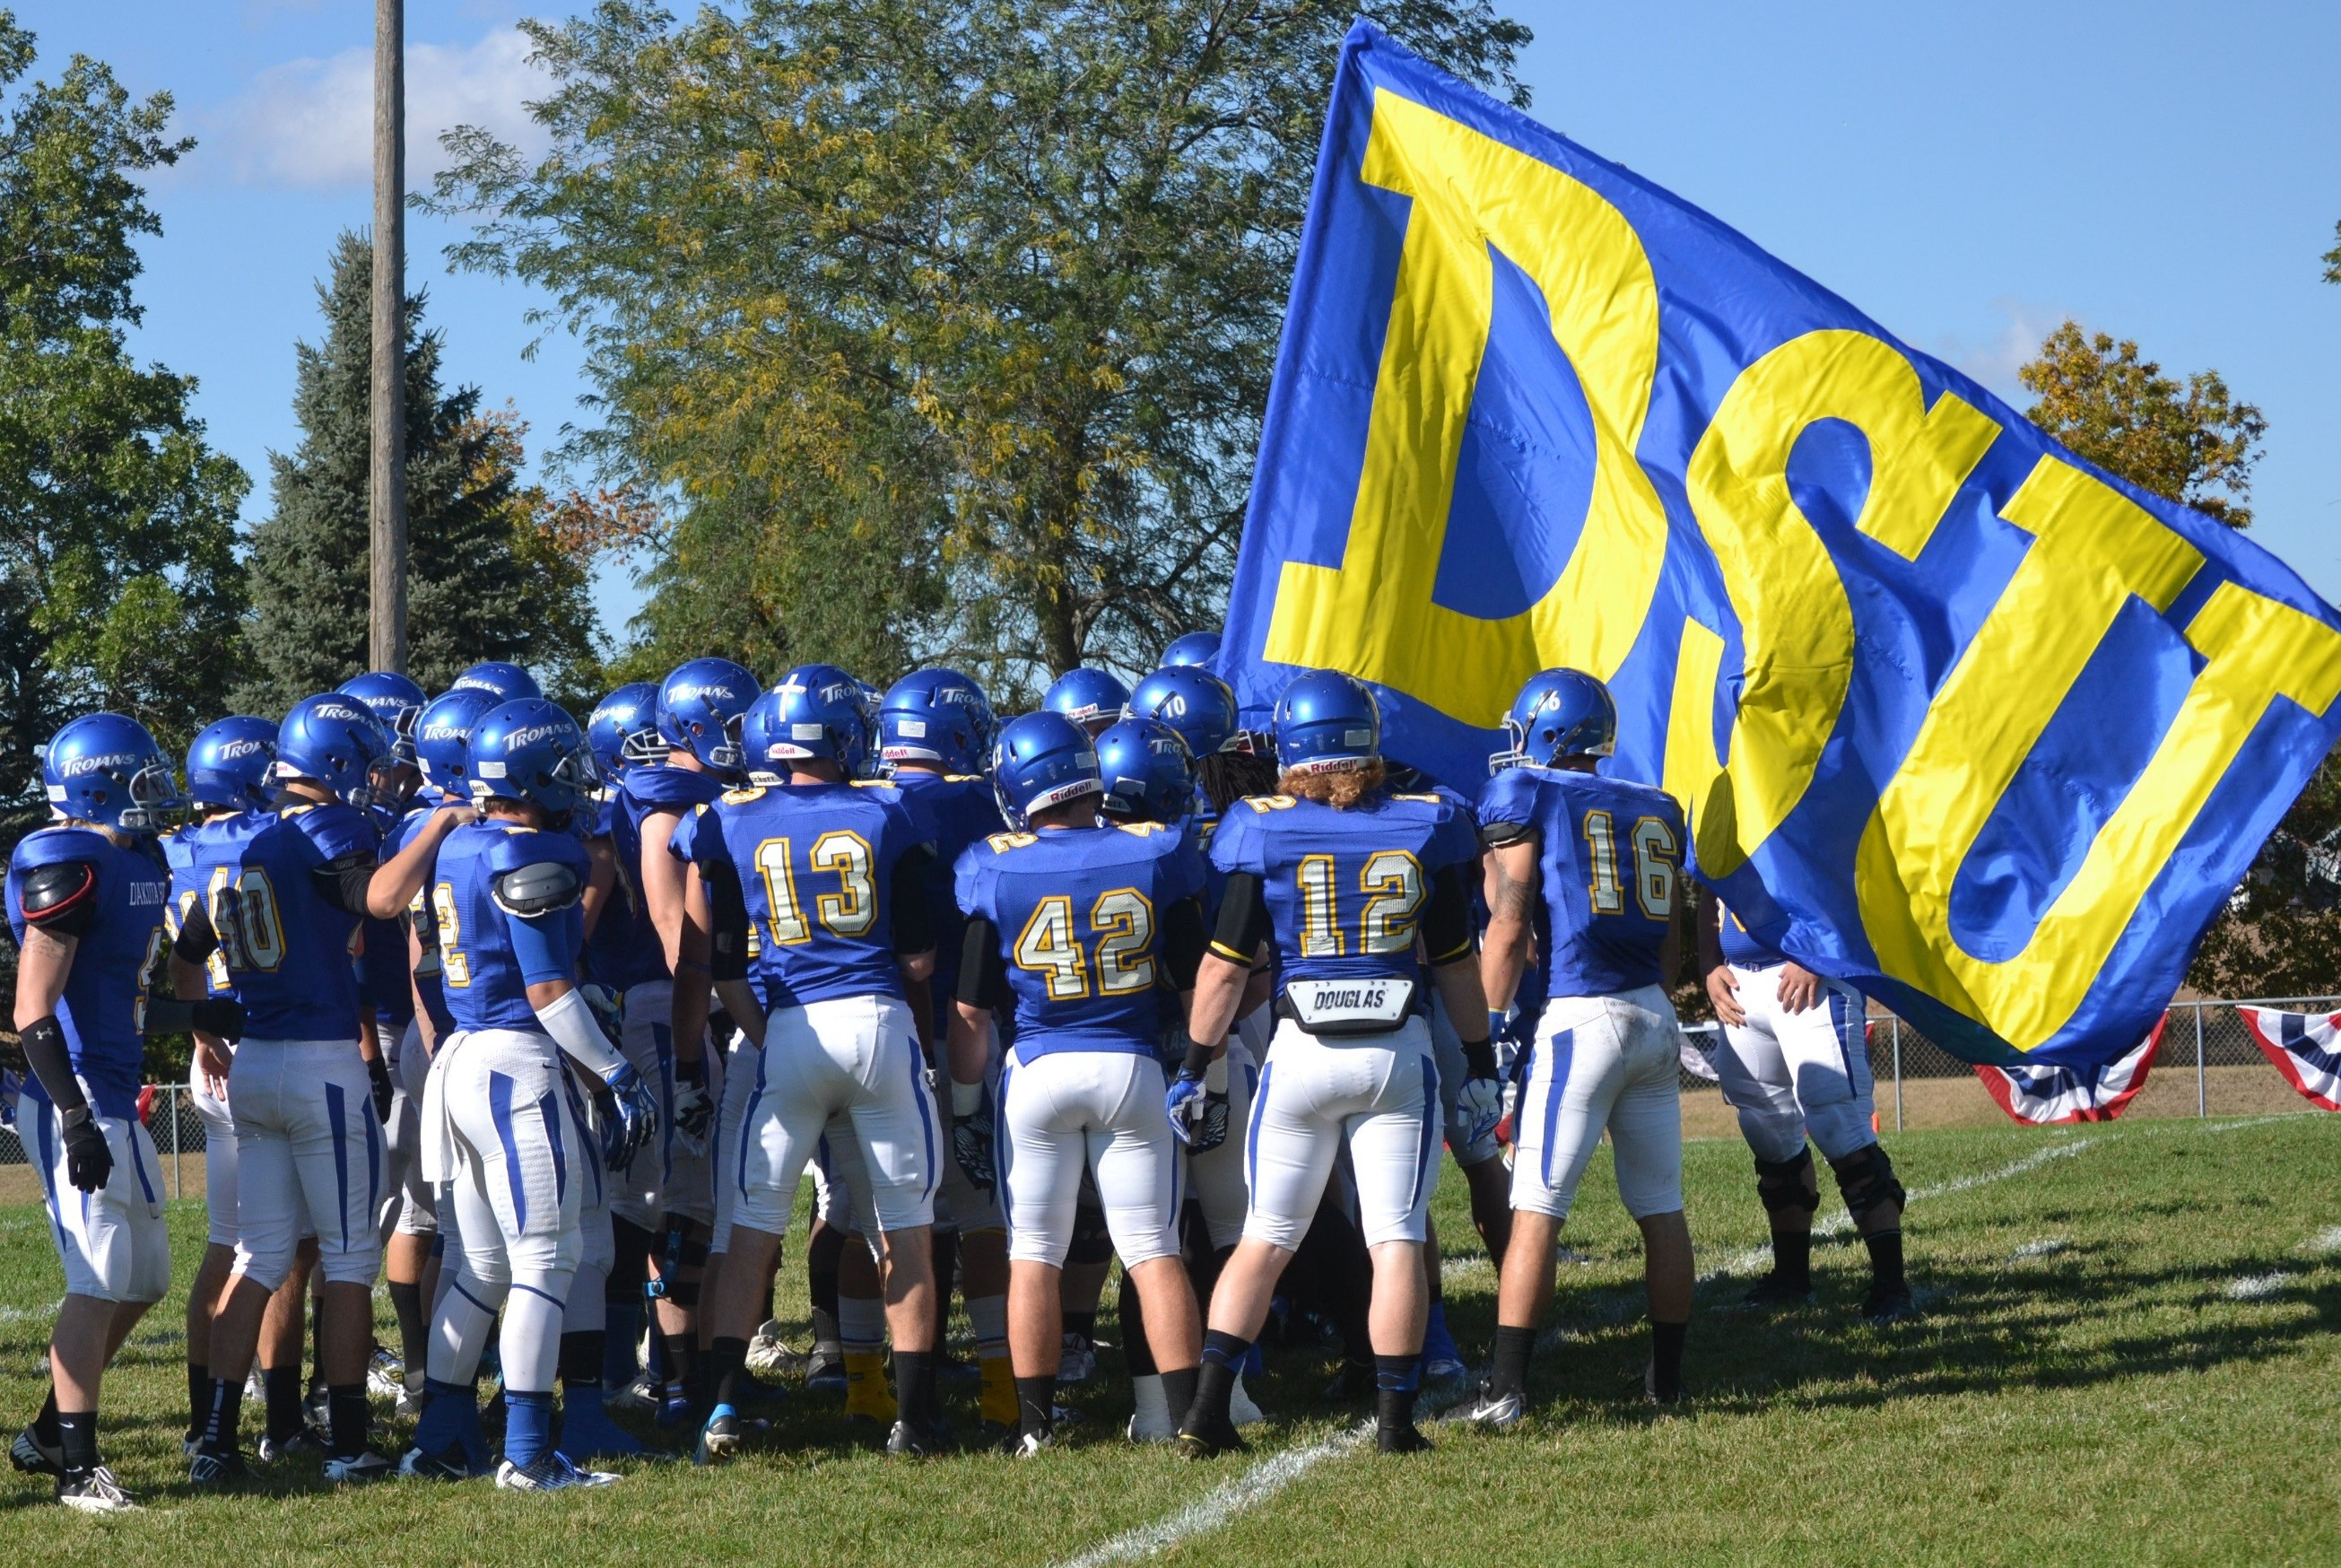 2013 Homecoming Football: Trojans vs. Bulldogs